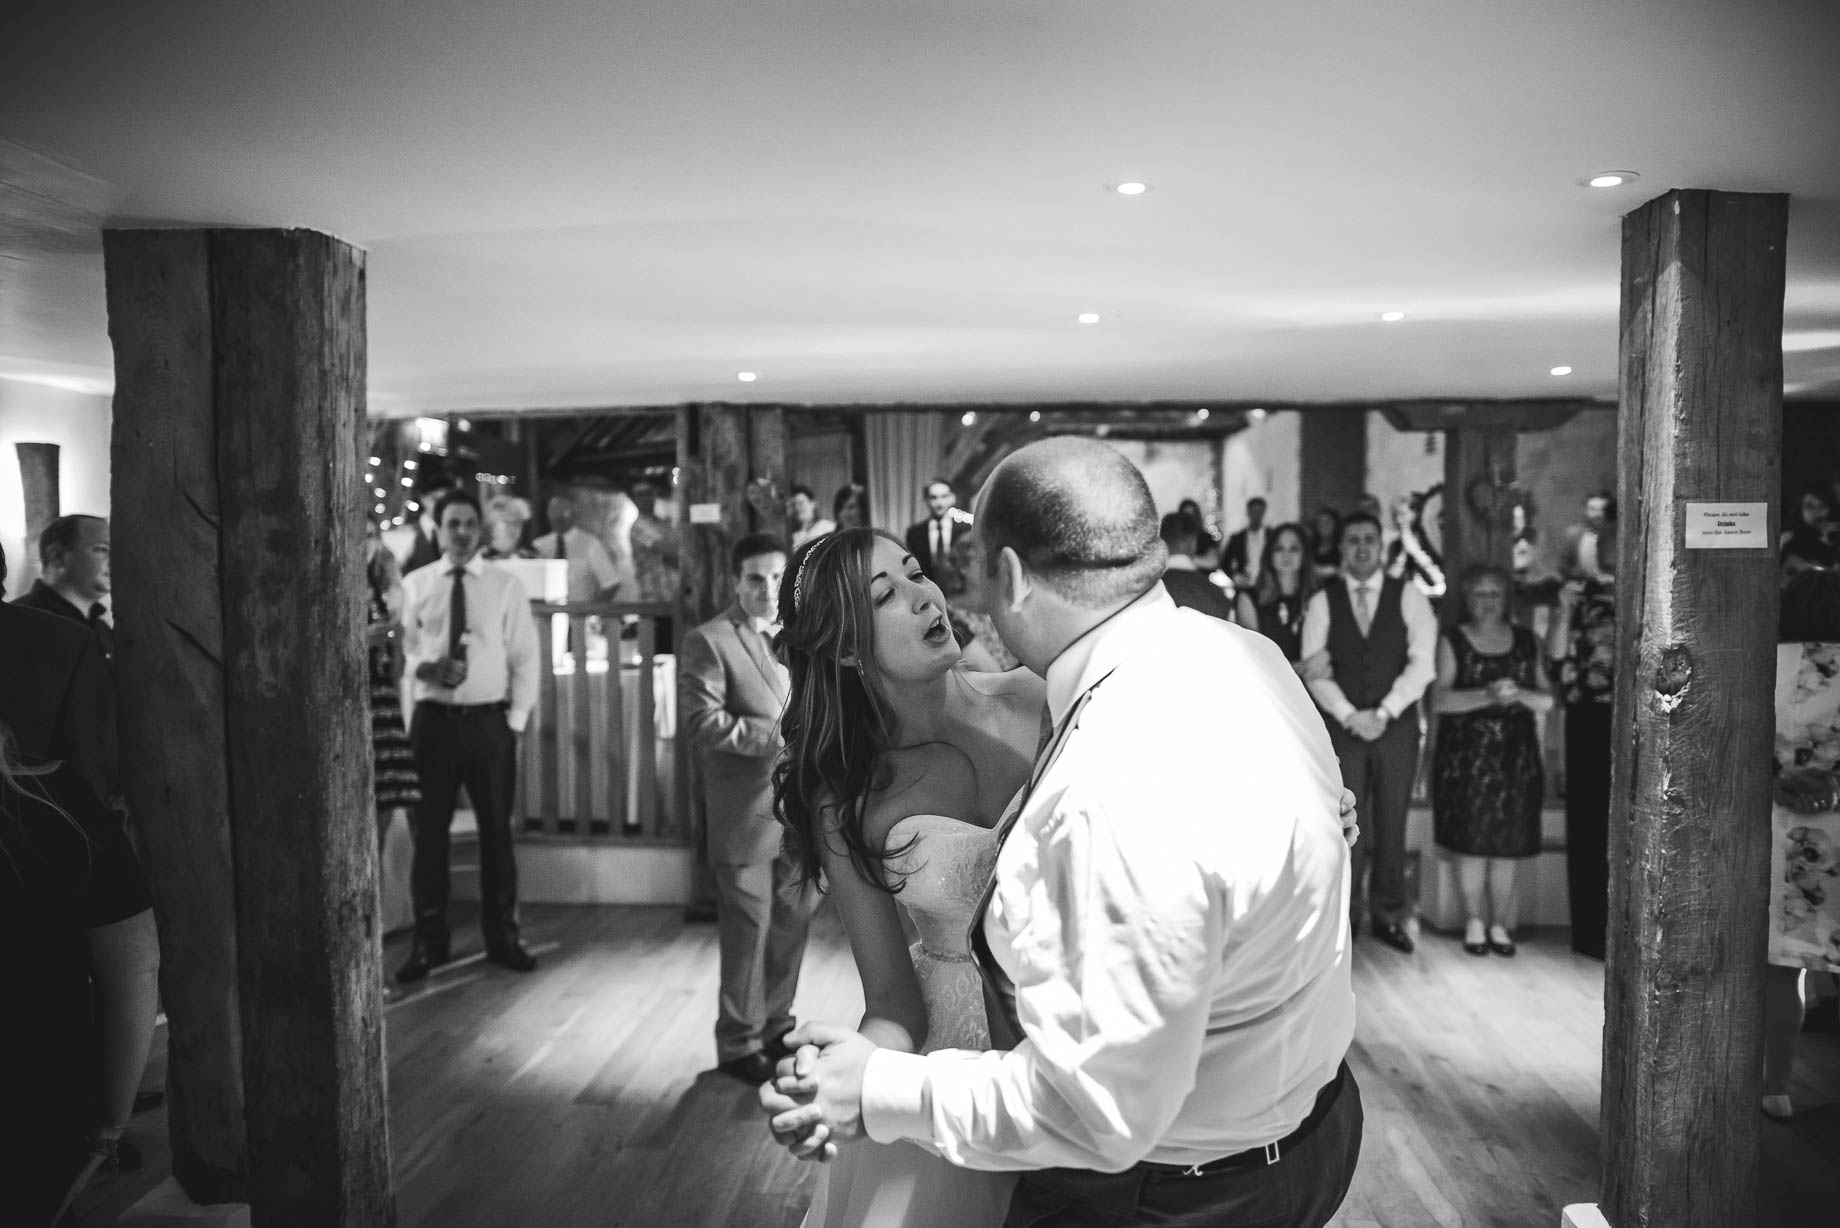 Bury Court Barn wedding photography - Guy Collier - Kirsty and Lewis (149 of 150)